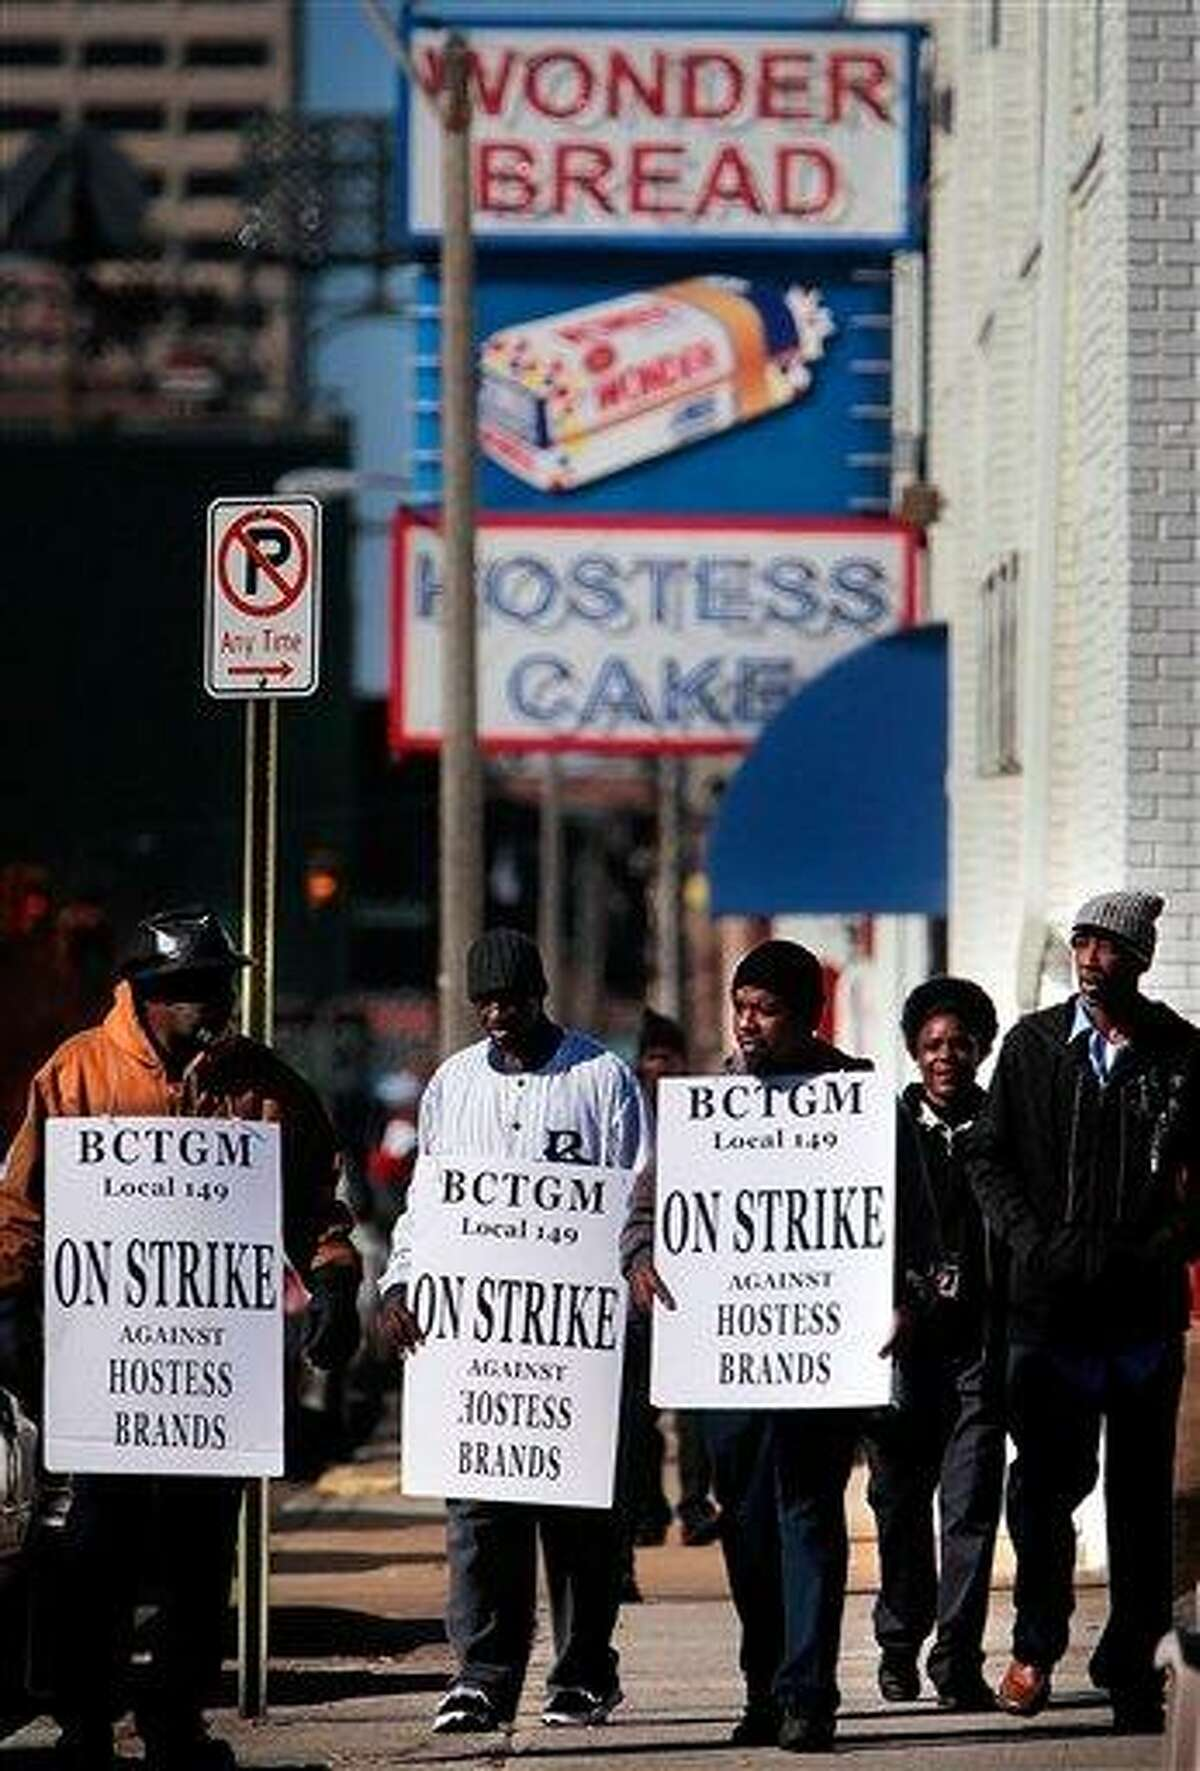 Members of the bakery, confectionery, tobacco, and grain millers union (BCTGM Local 149) gather to strike outside the Hostess bakery on Monroe Monday in Memphis, Tenn. The union, which has been on strike since Friday, is trying to prevent new wage and benefit cuts which the company is making nation wide. Associated Press